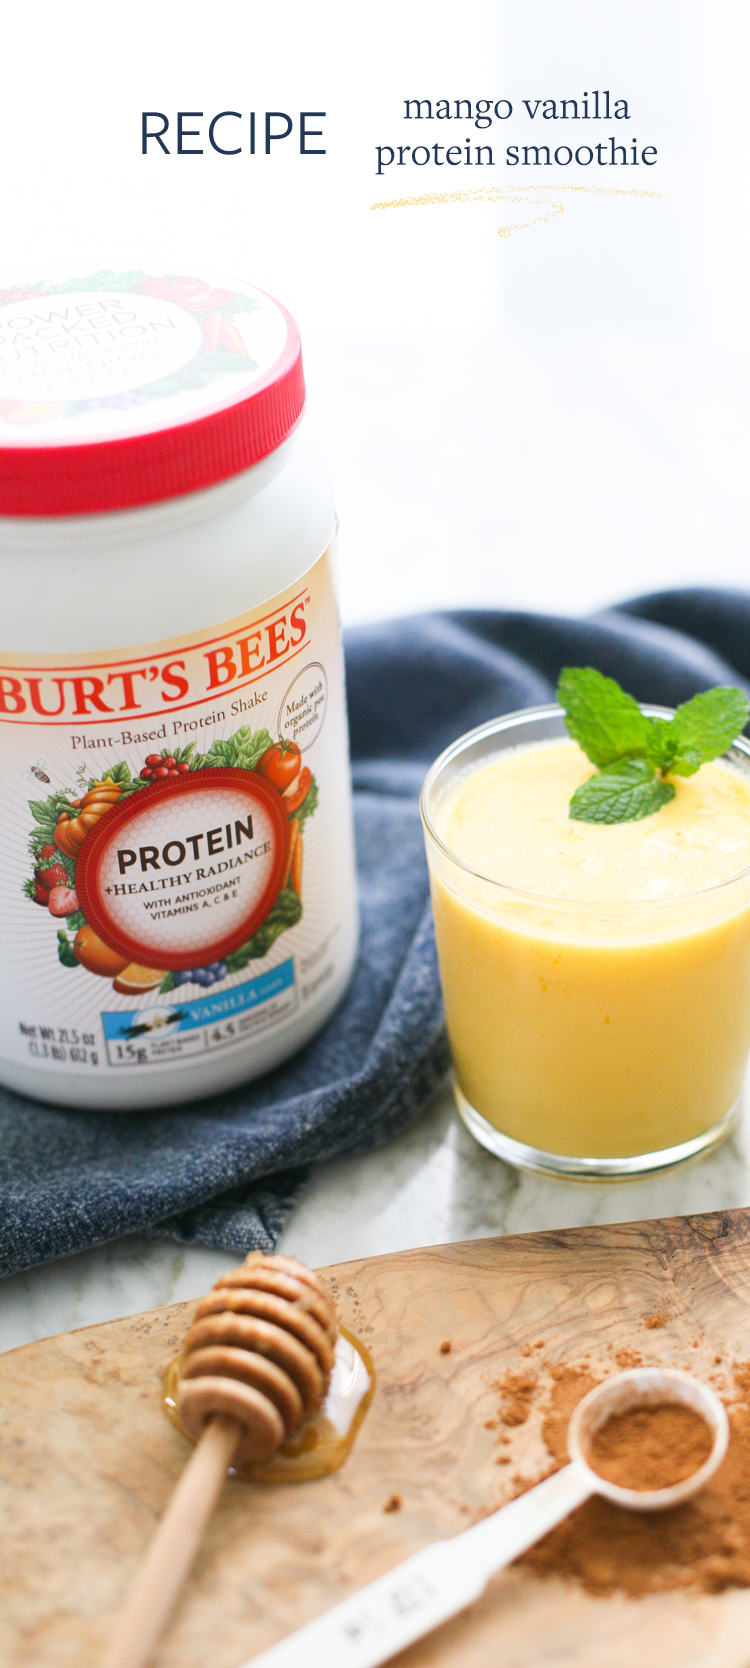 @burtsbees Vanilla Protein Shake is the perfect addition to my healthy eating routine. We partnered to share a healthy recipe for Mango Vanilla Protein Smoothies, plus my favorite fitness tips. Read more and get the full recipe on Jojotastic.com #drinkitallin #sponsored